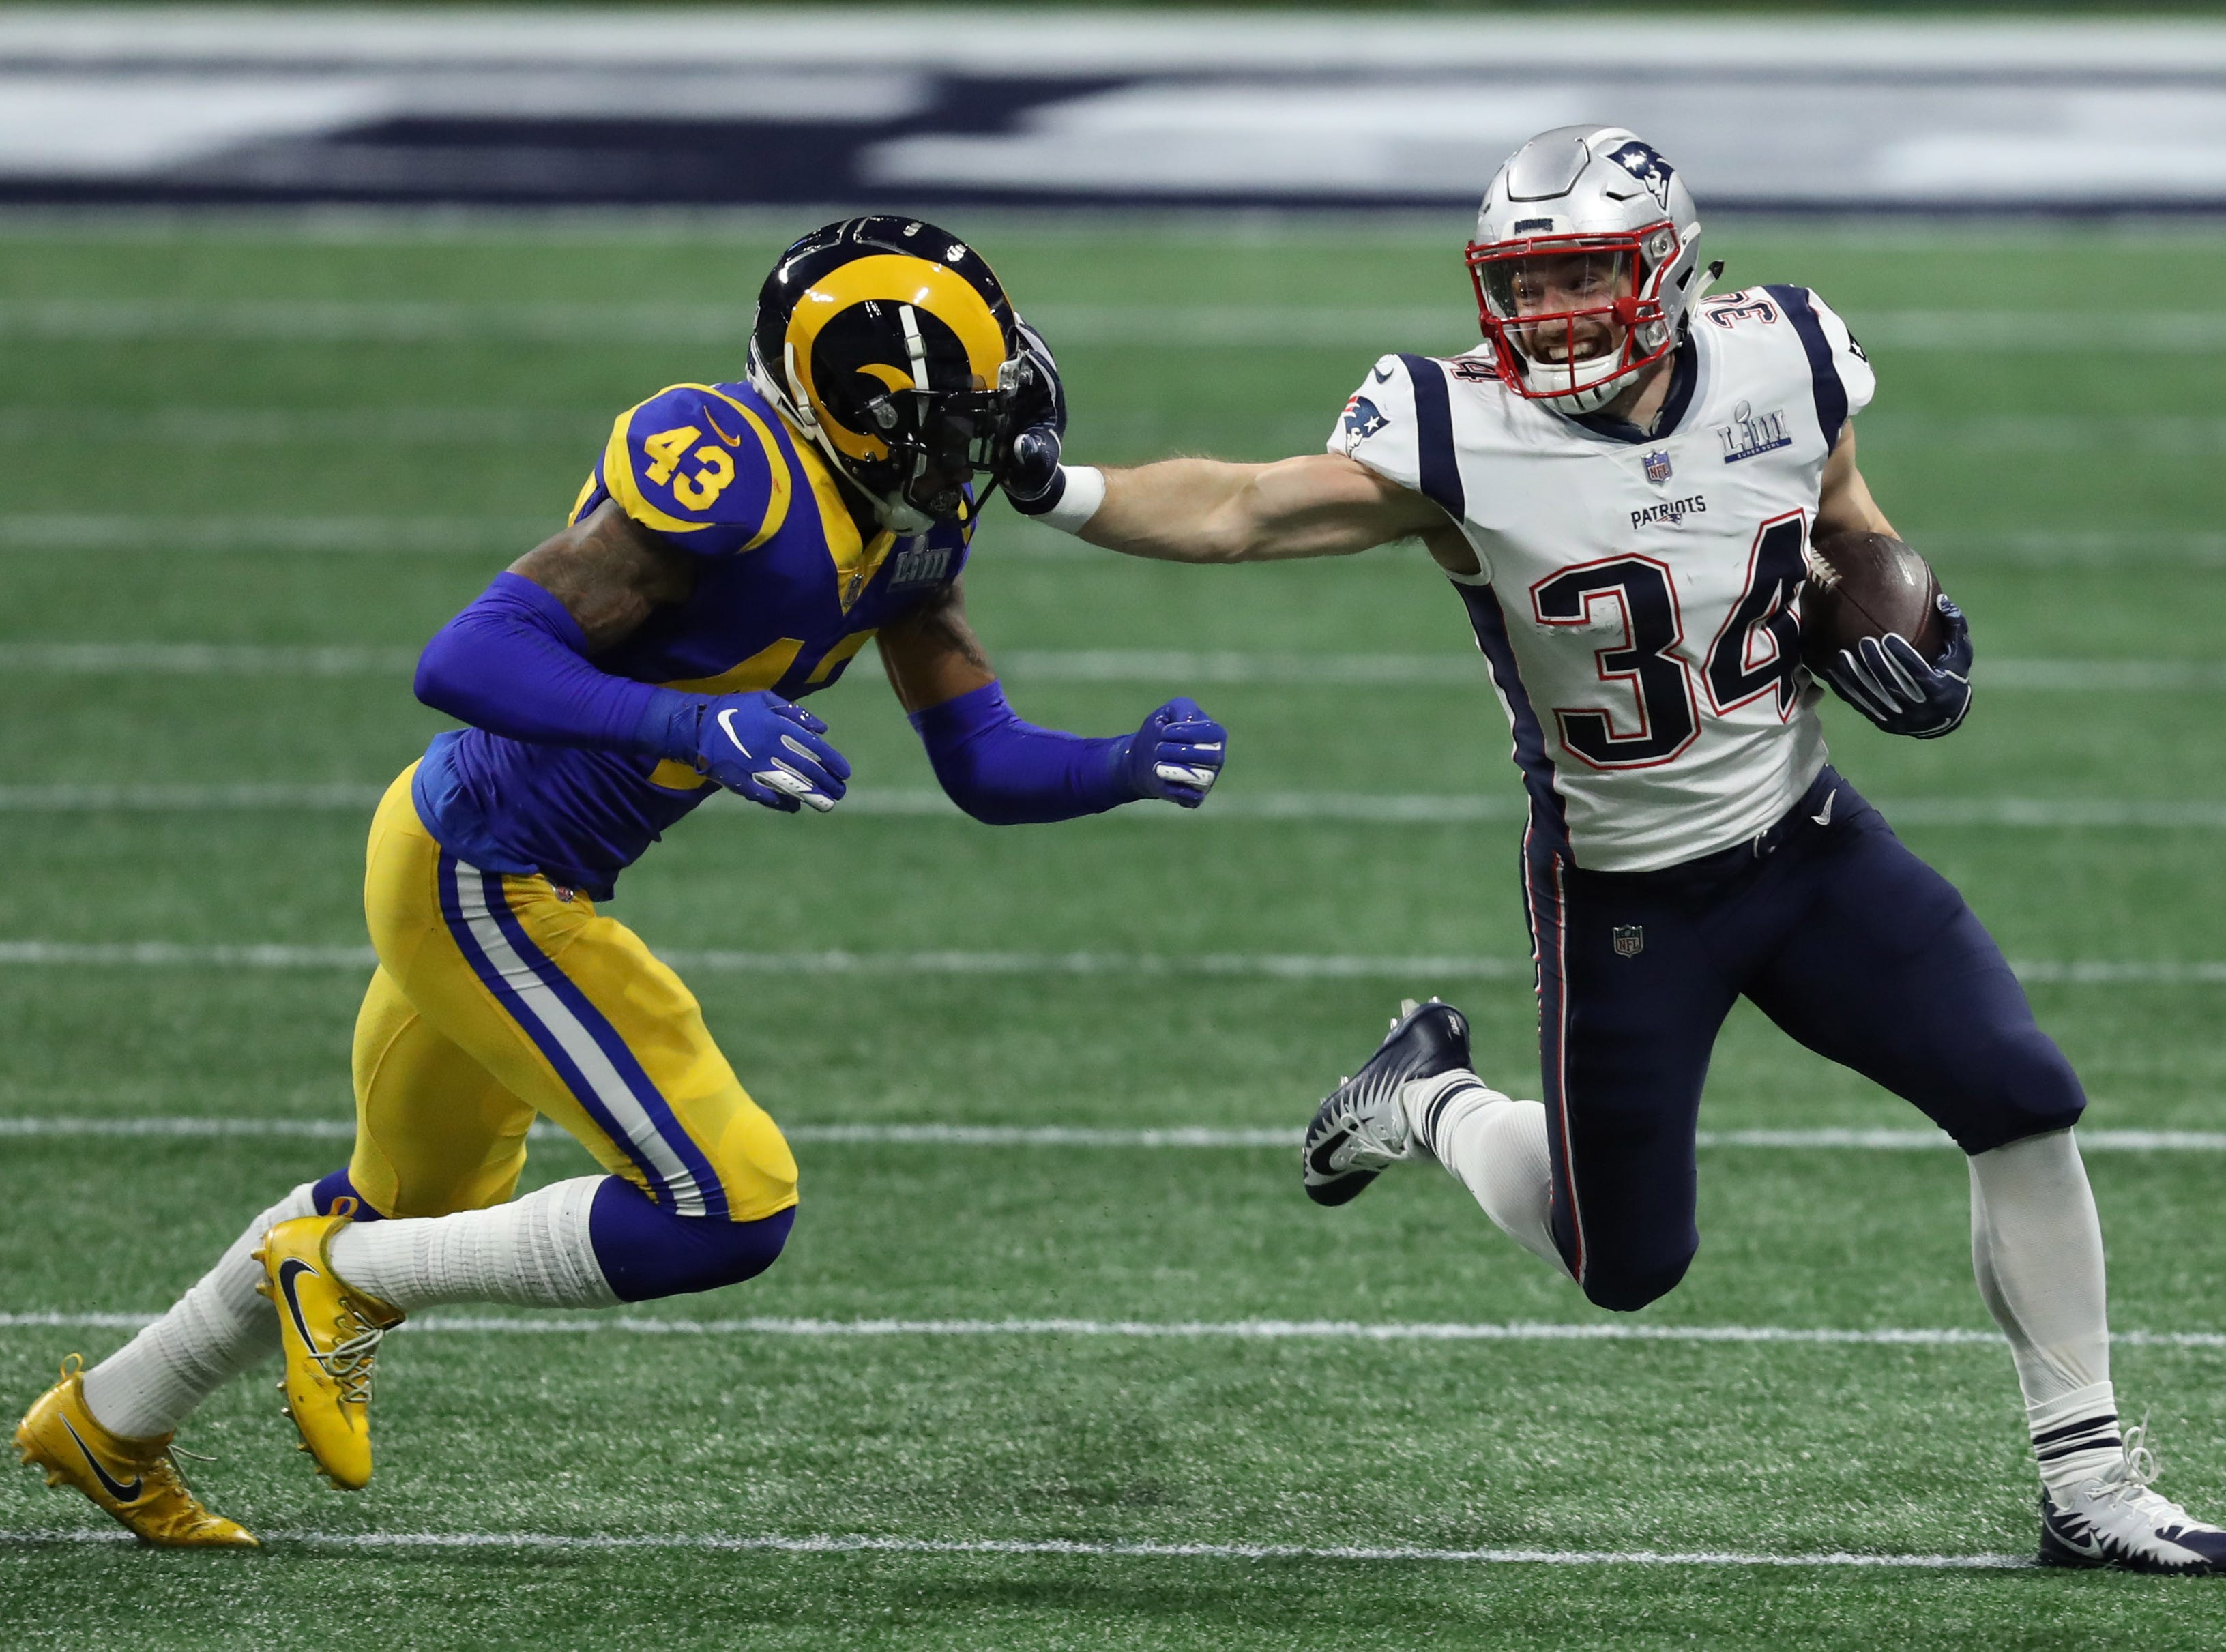 New England Patriots running back Rex Burkhead (34) breaks the tackled of Los Angeles Rams strong safety John Johnson (43) during the first quarter of Super Bowl LIII.